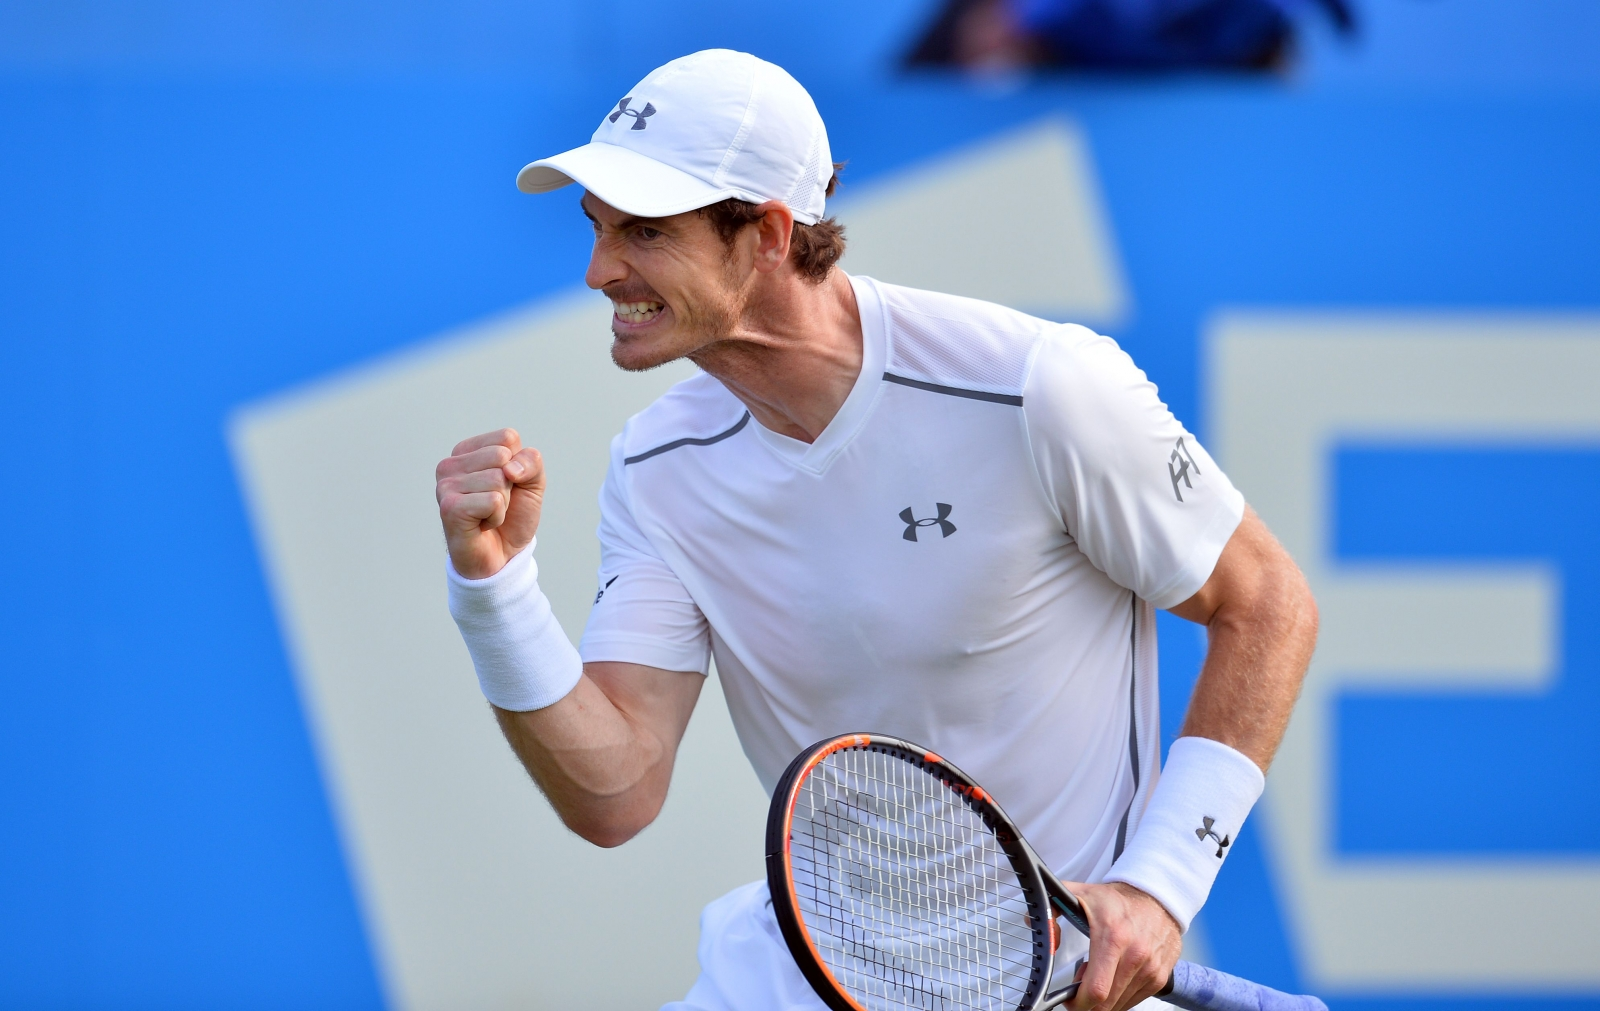 andy murray - photo #11